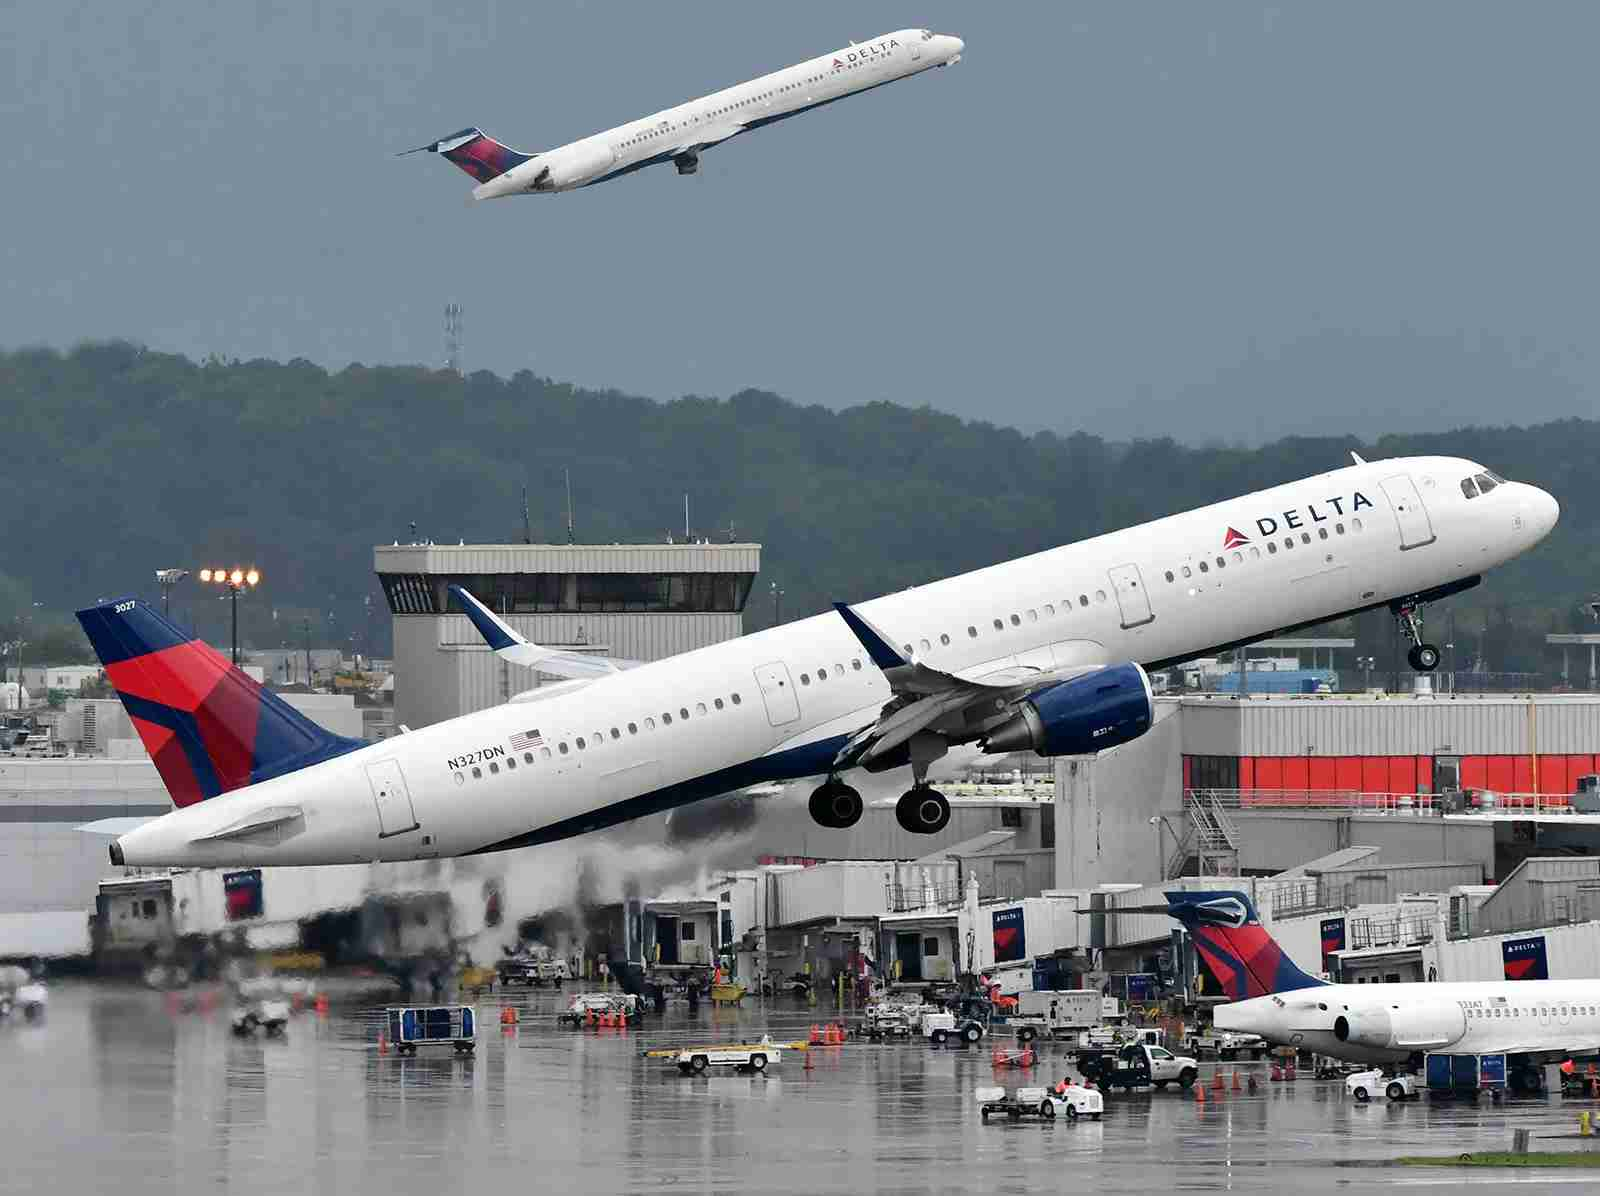 A Delta A321 (foreground) and MD-88 taking off from Atlanta airport (Photo by Alberto Riva/TPG)